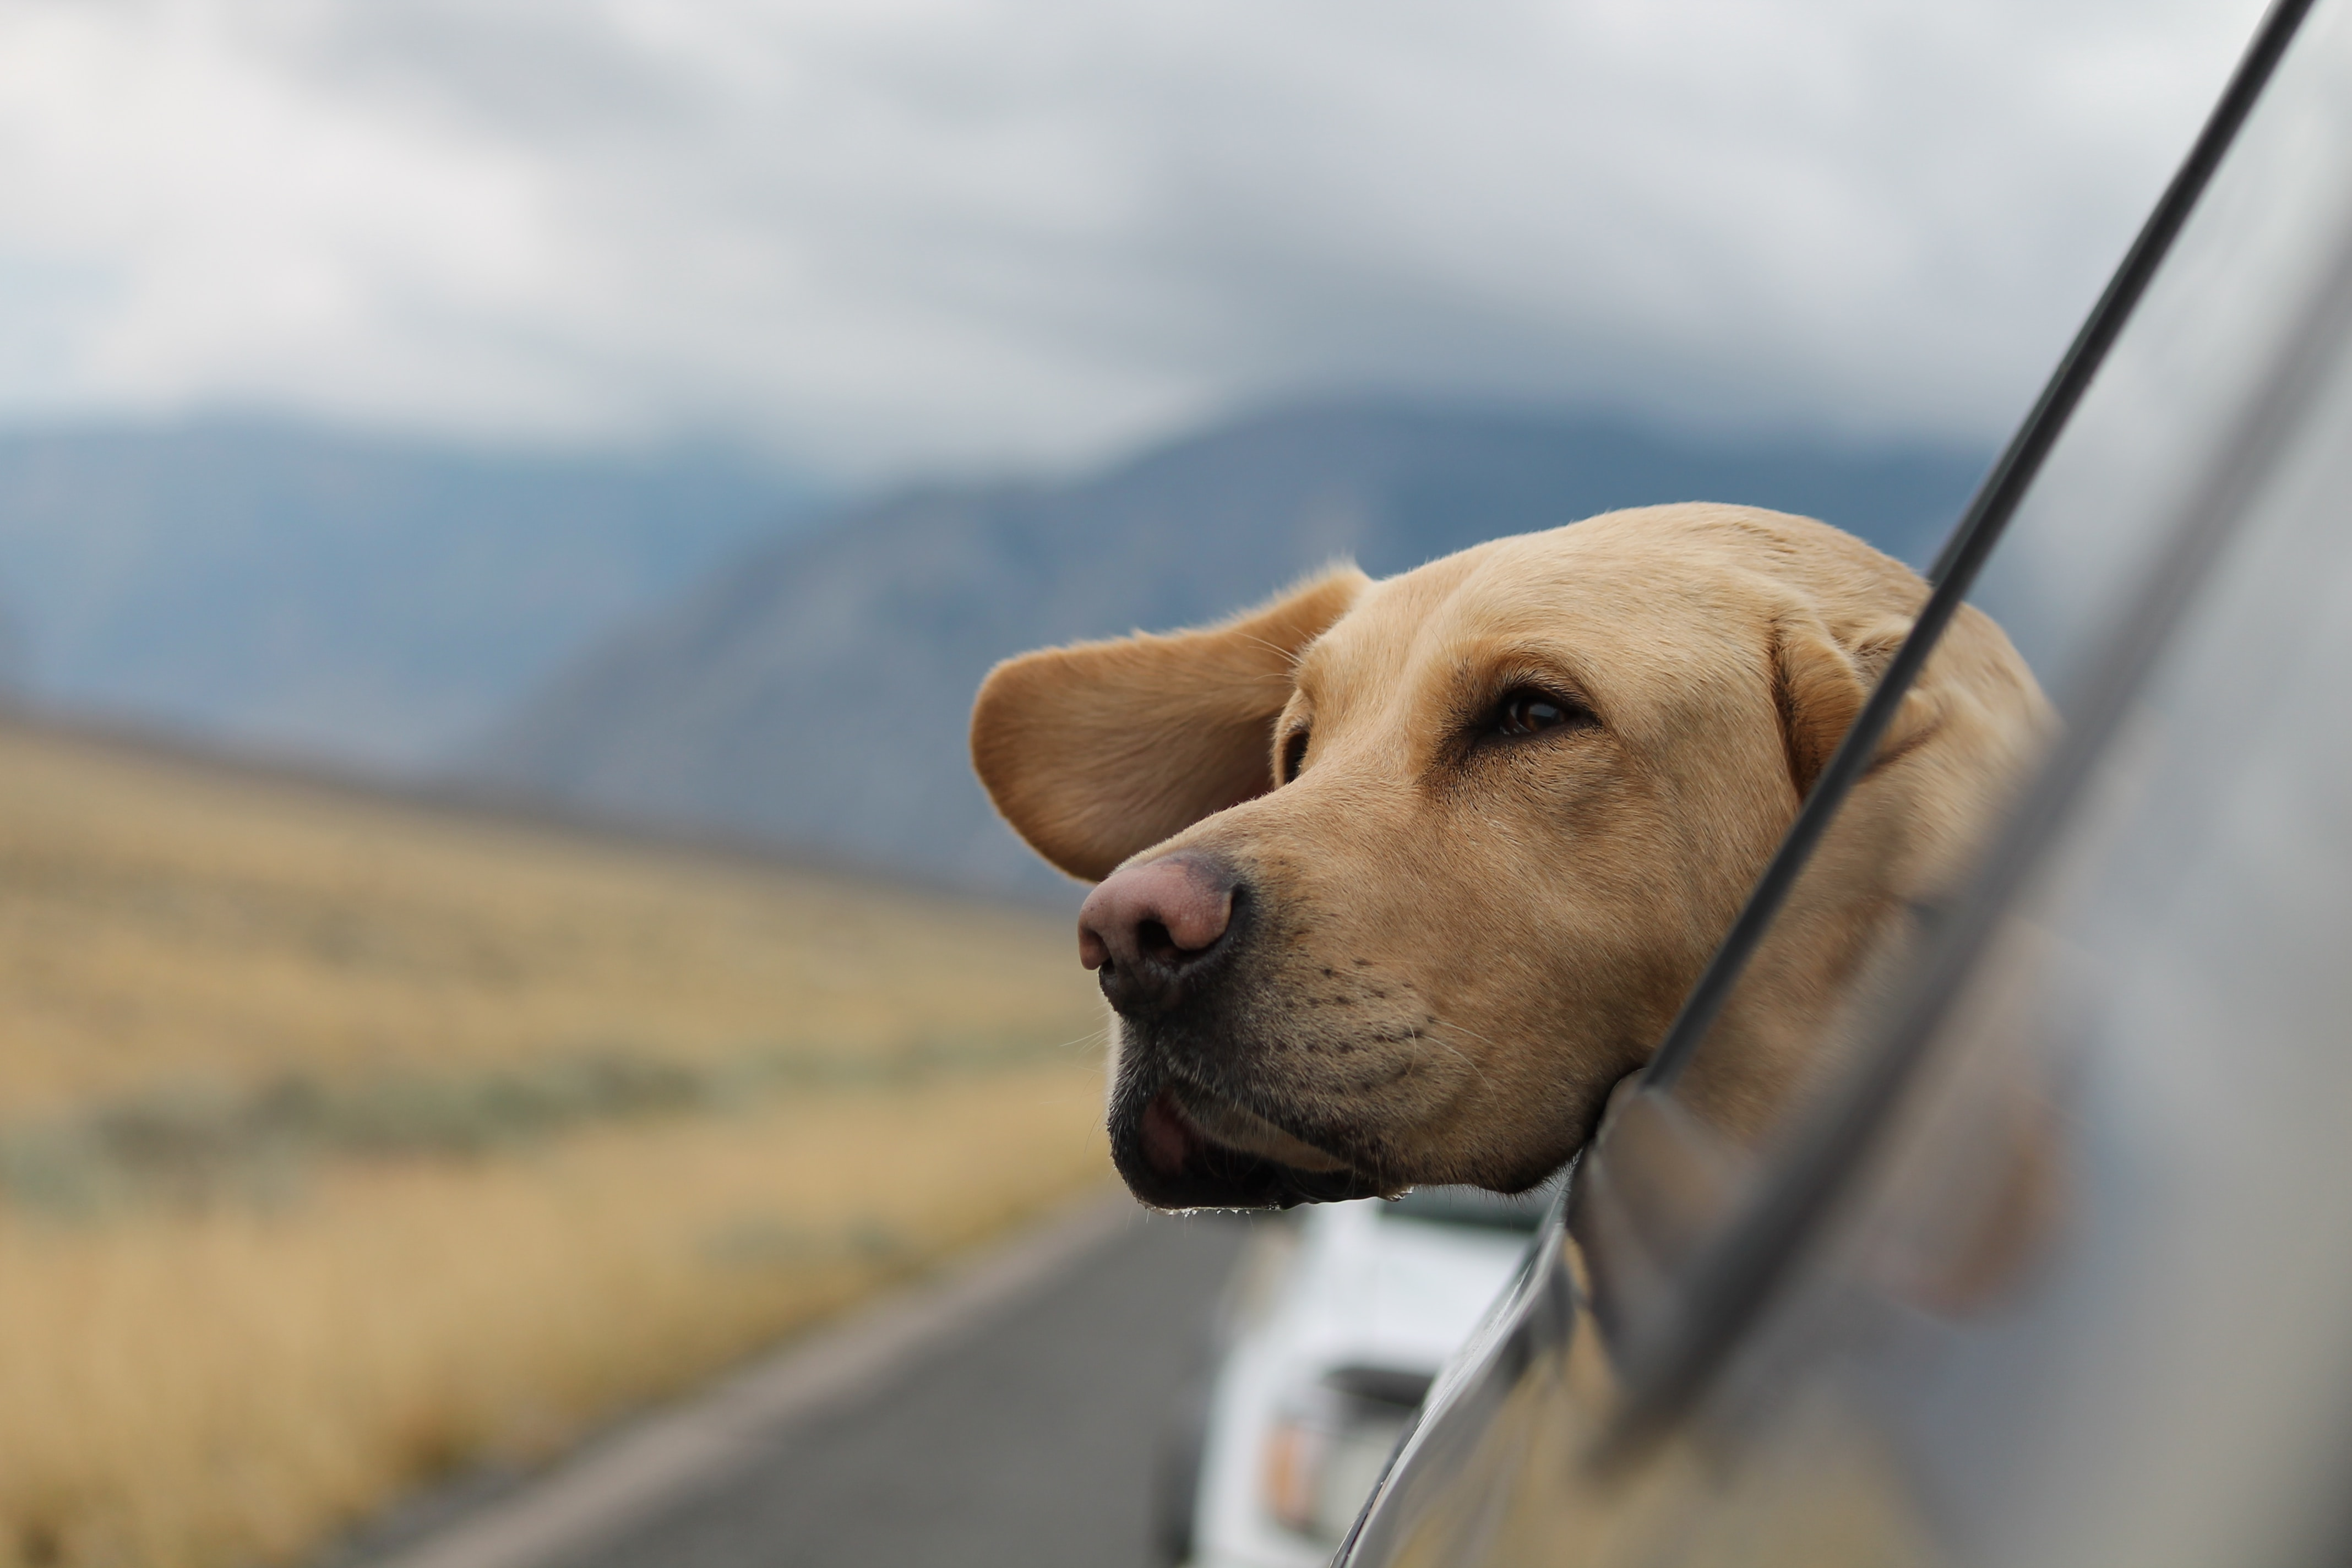 Thinking about your pet companion(s) and the places you will visit will keep everyone happy!